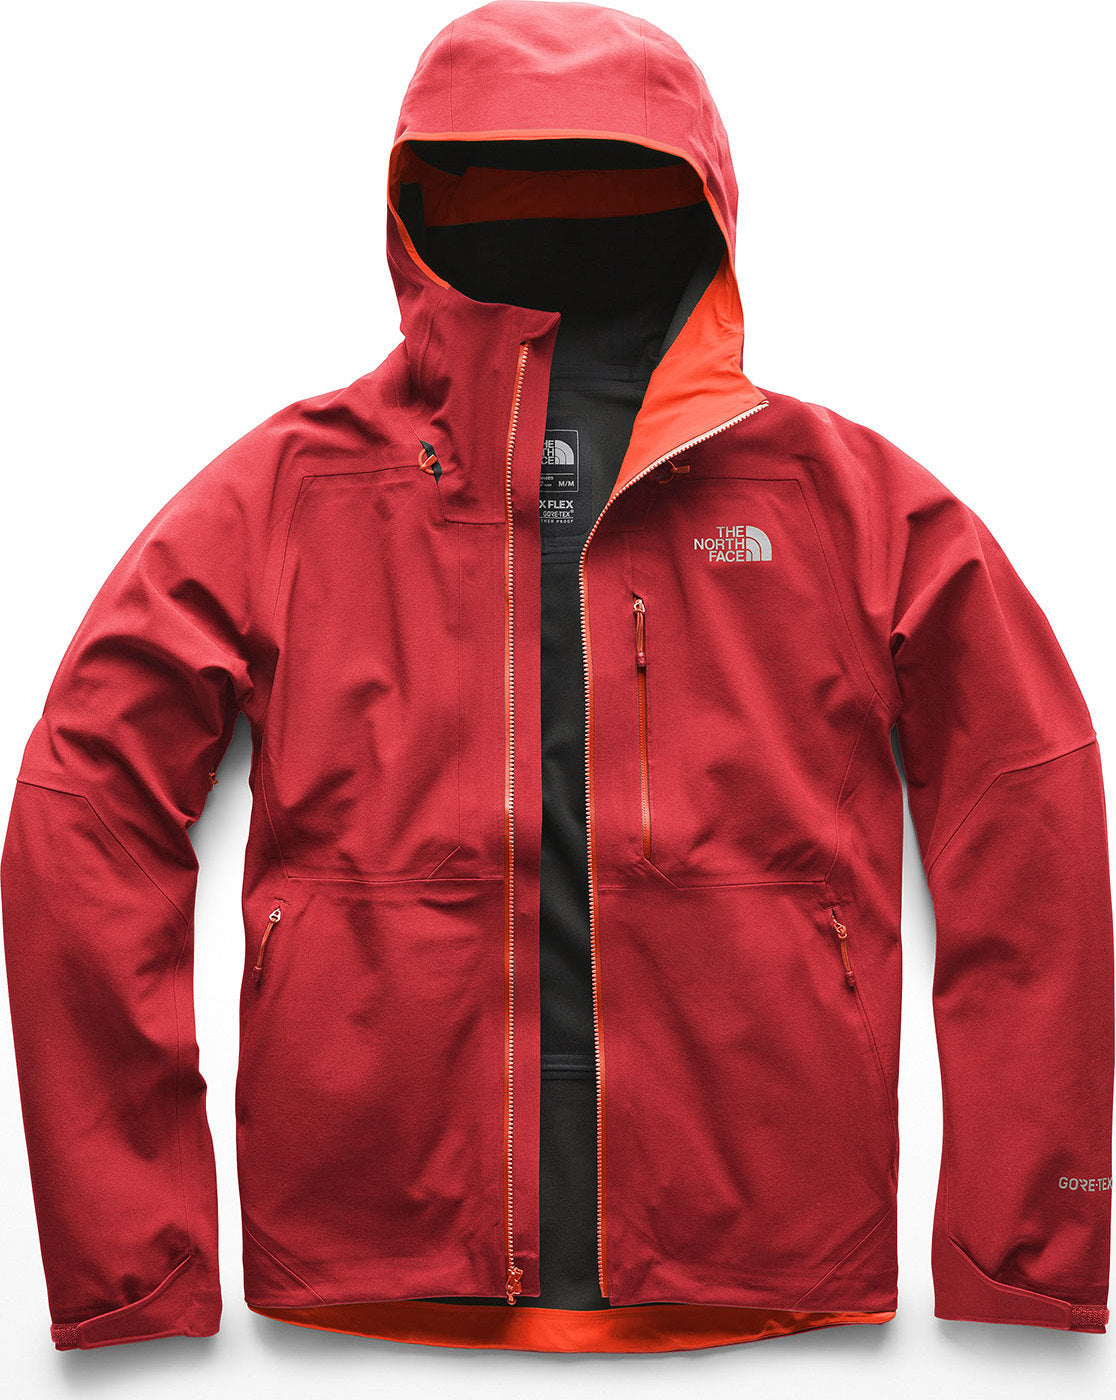 a666971dc The North Face Men's Apex Flex GTX® 2.0 Jacket